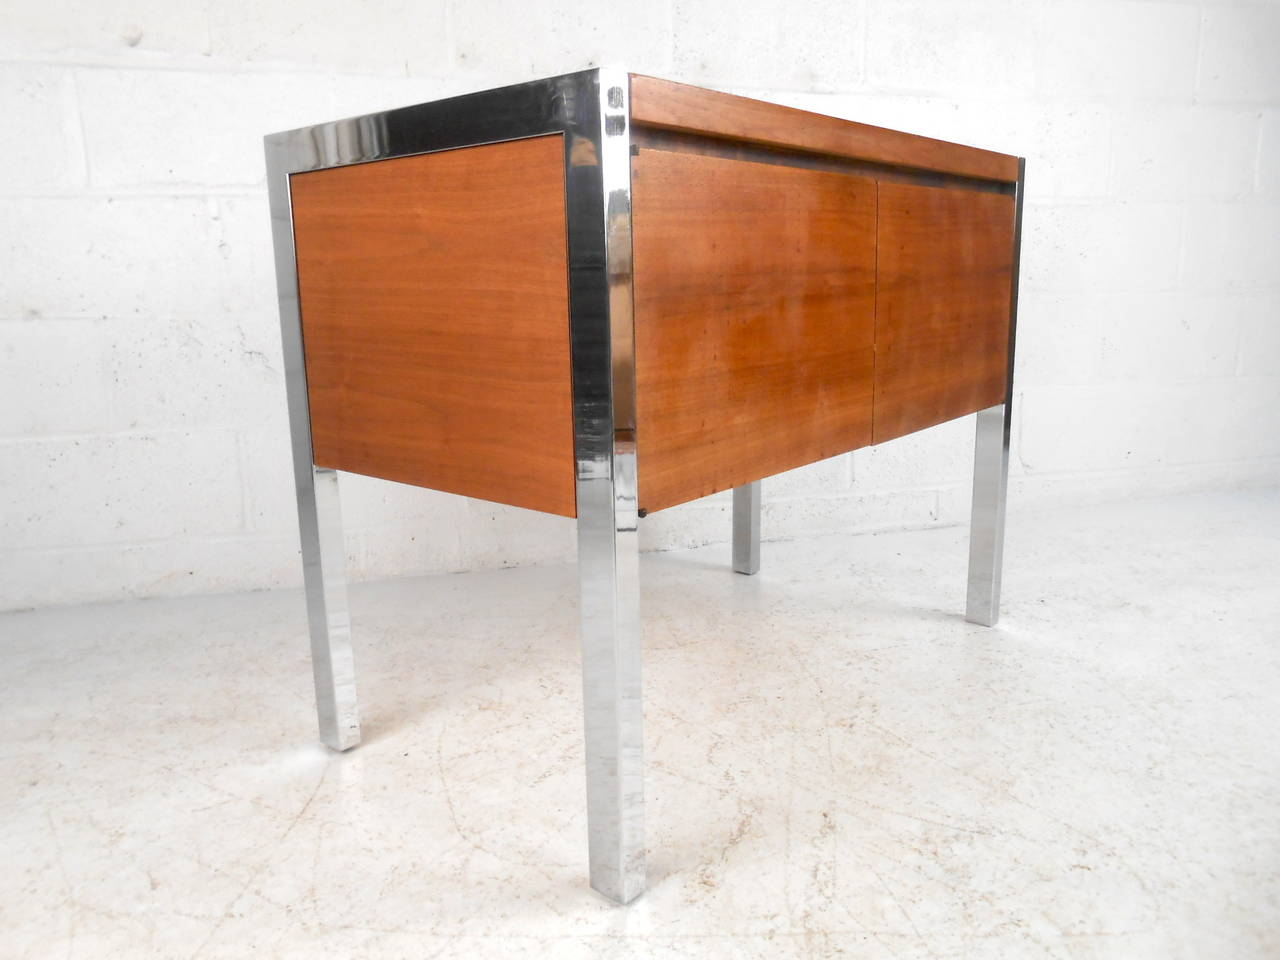 This midcentury cabinet features solid walnut construction, a chrome frame, and two door design with adjustable interior shelf which offers ample storage and a modern accent to any home or office space.  Please confirm item location (NY or NJ)